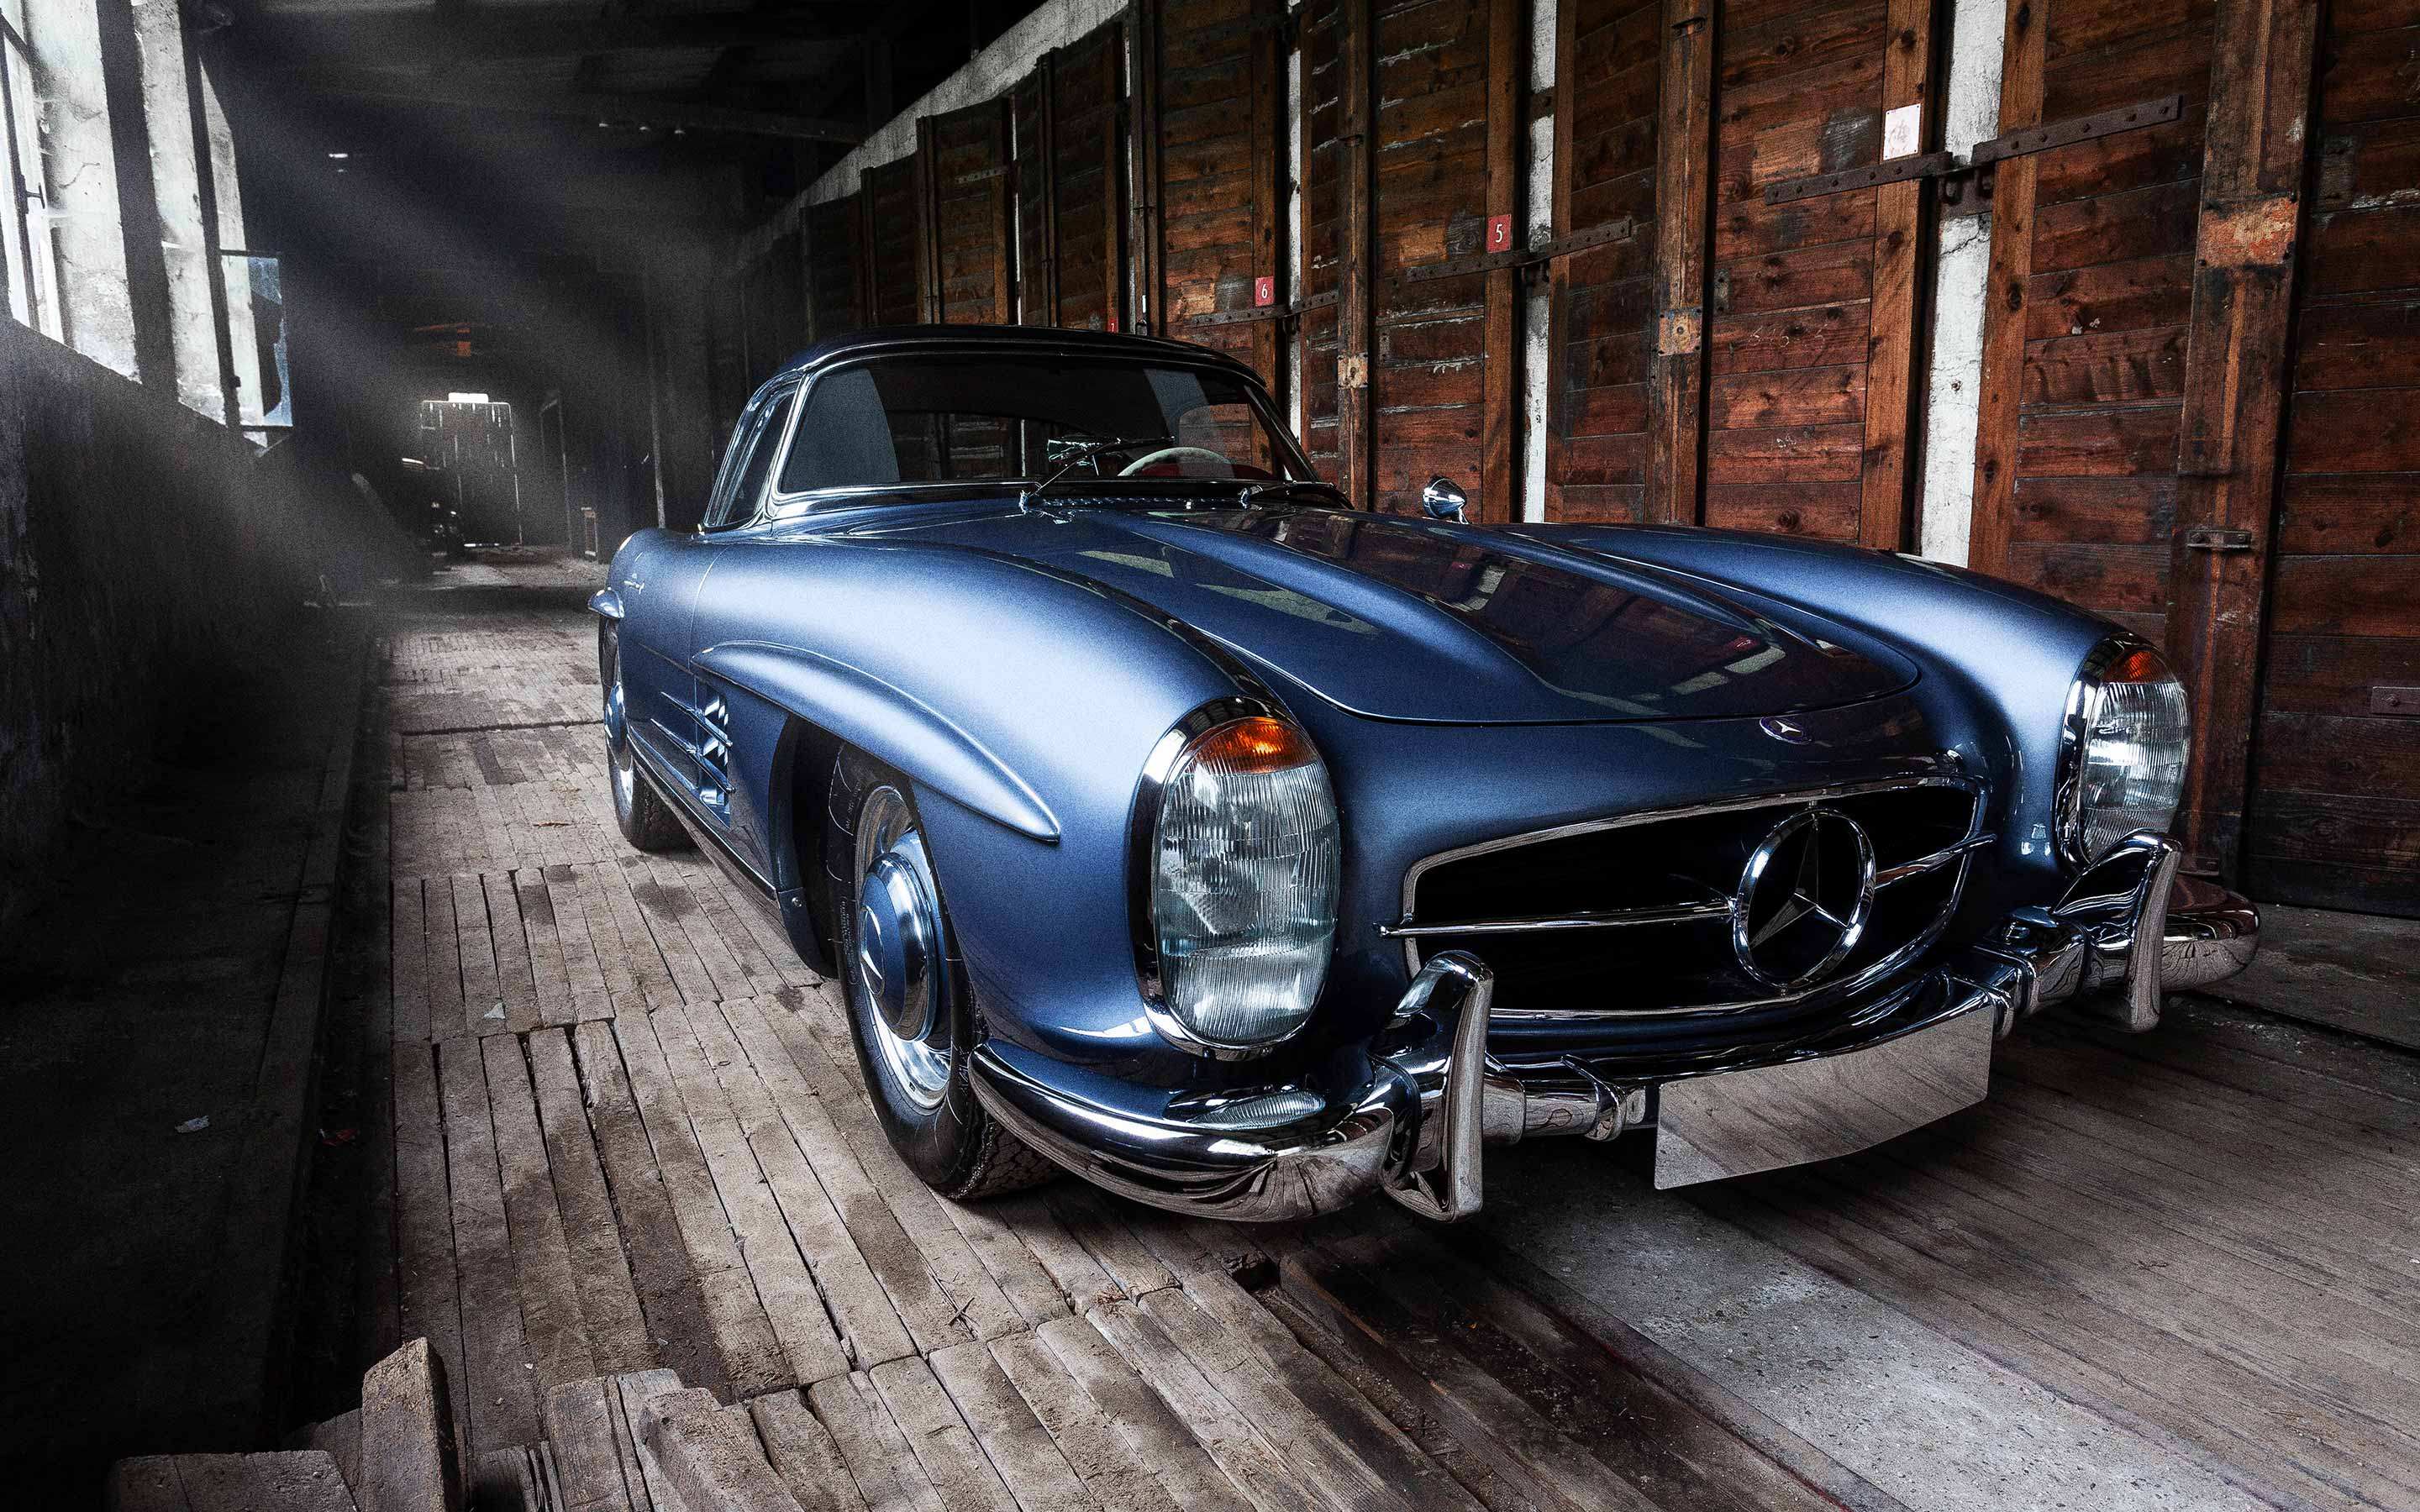 this_is_design_studio_fotografie_portfolio_industrie_mercedes_benz_300_SL_oldtimer_automotive_kalender